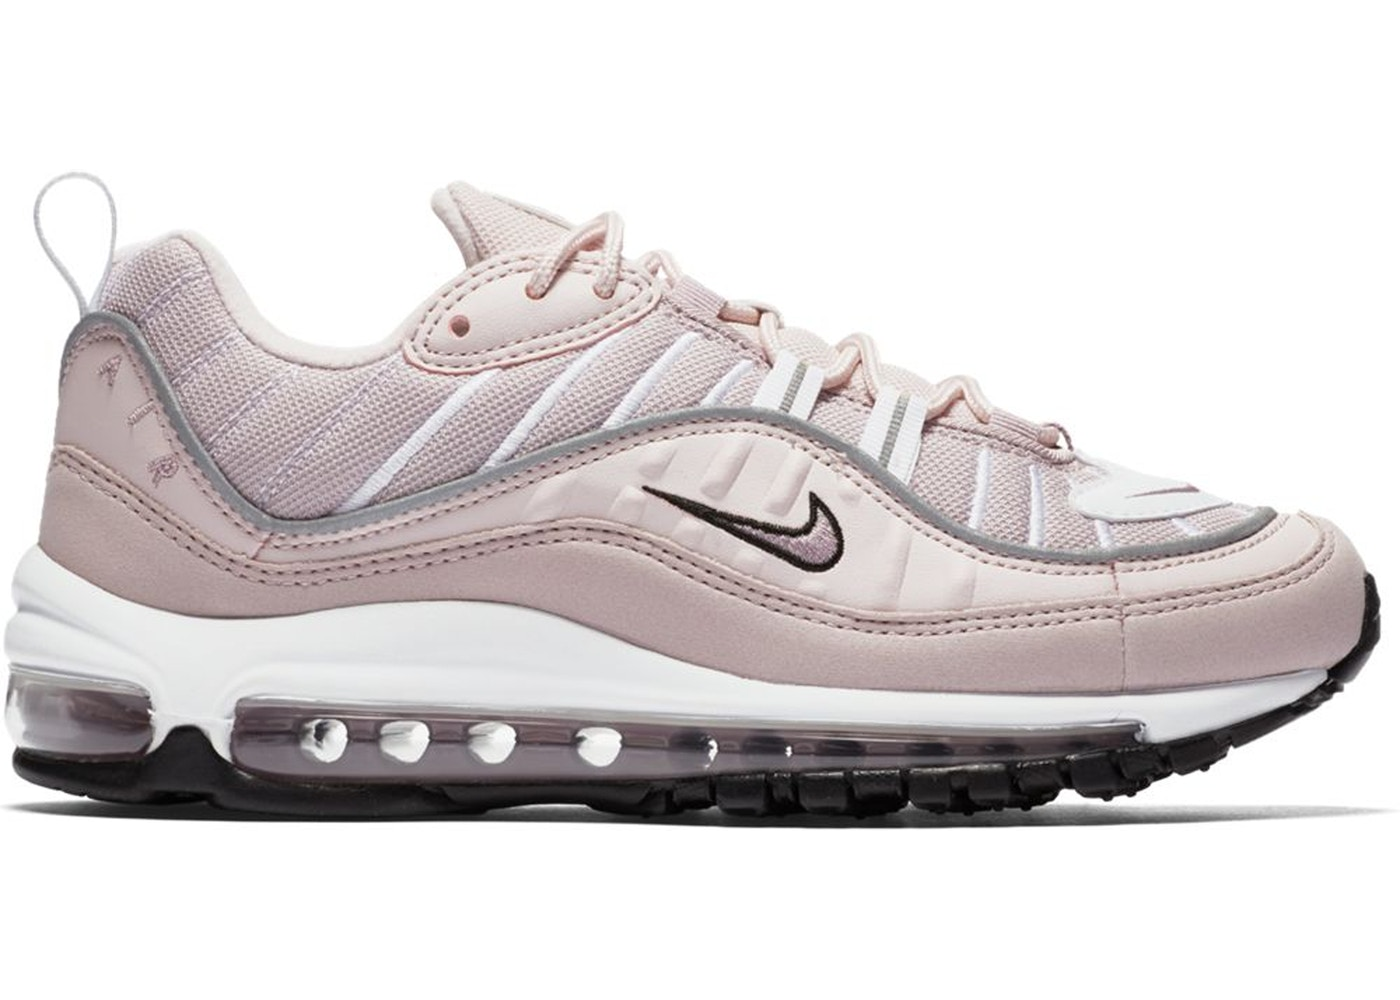 8bbb26521f Air Max 98 Barely Rose (W) - AH6799-600